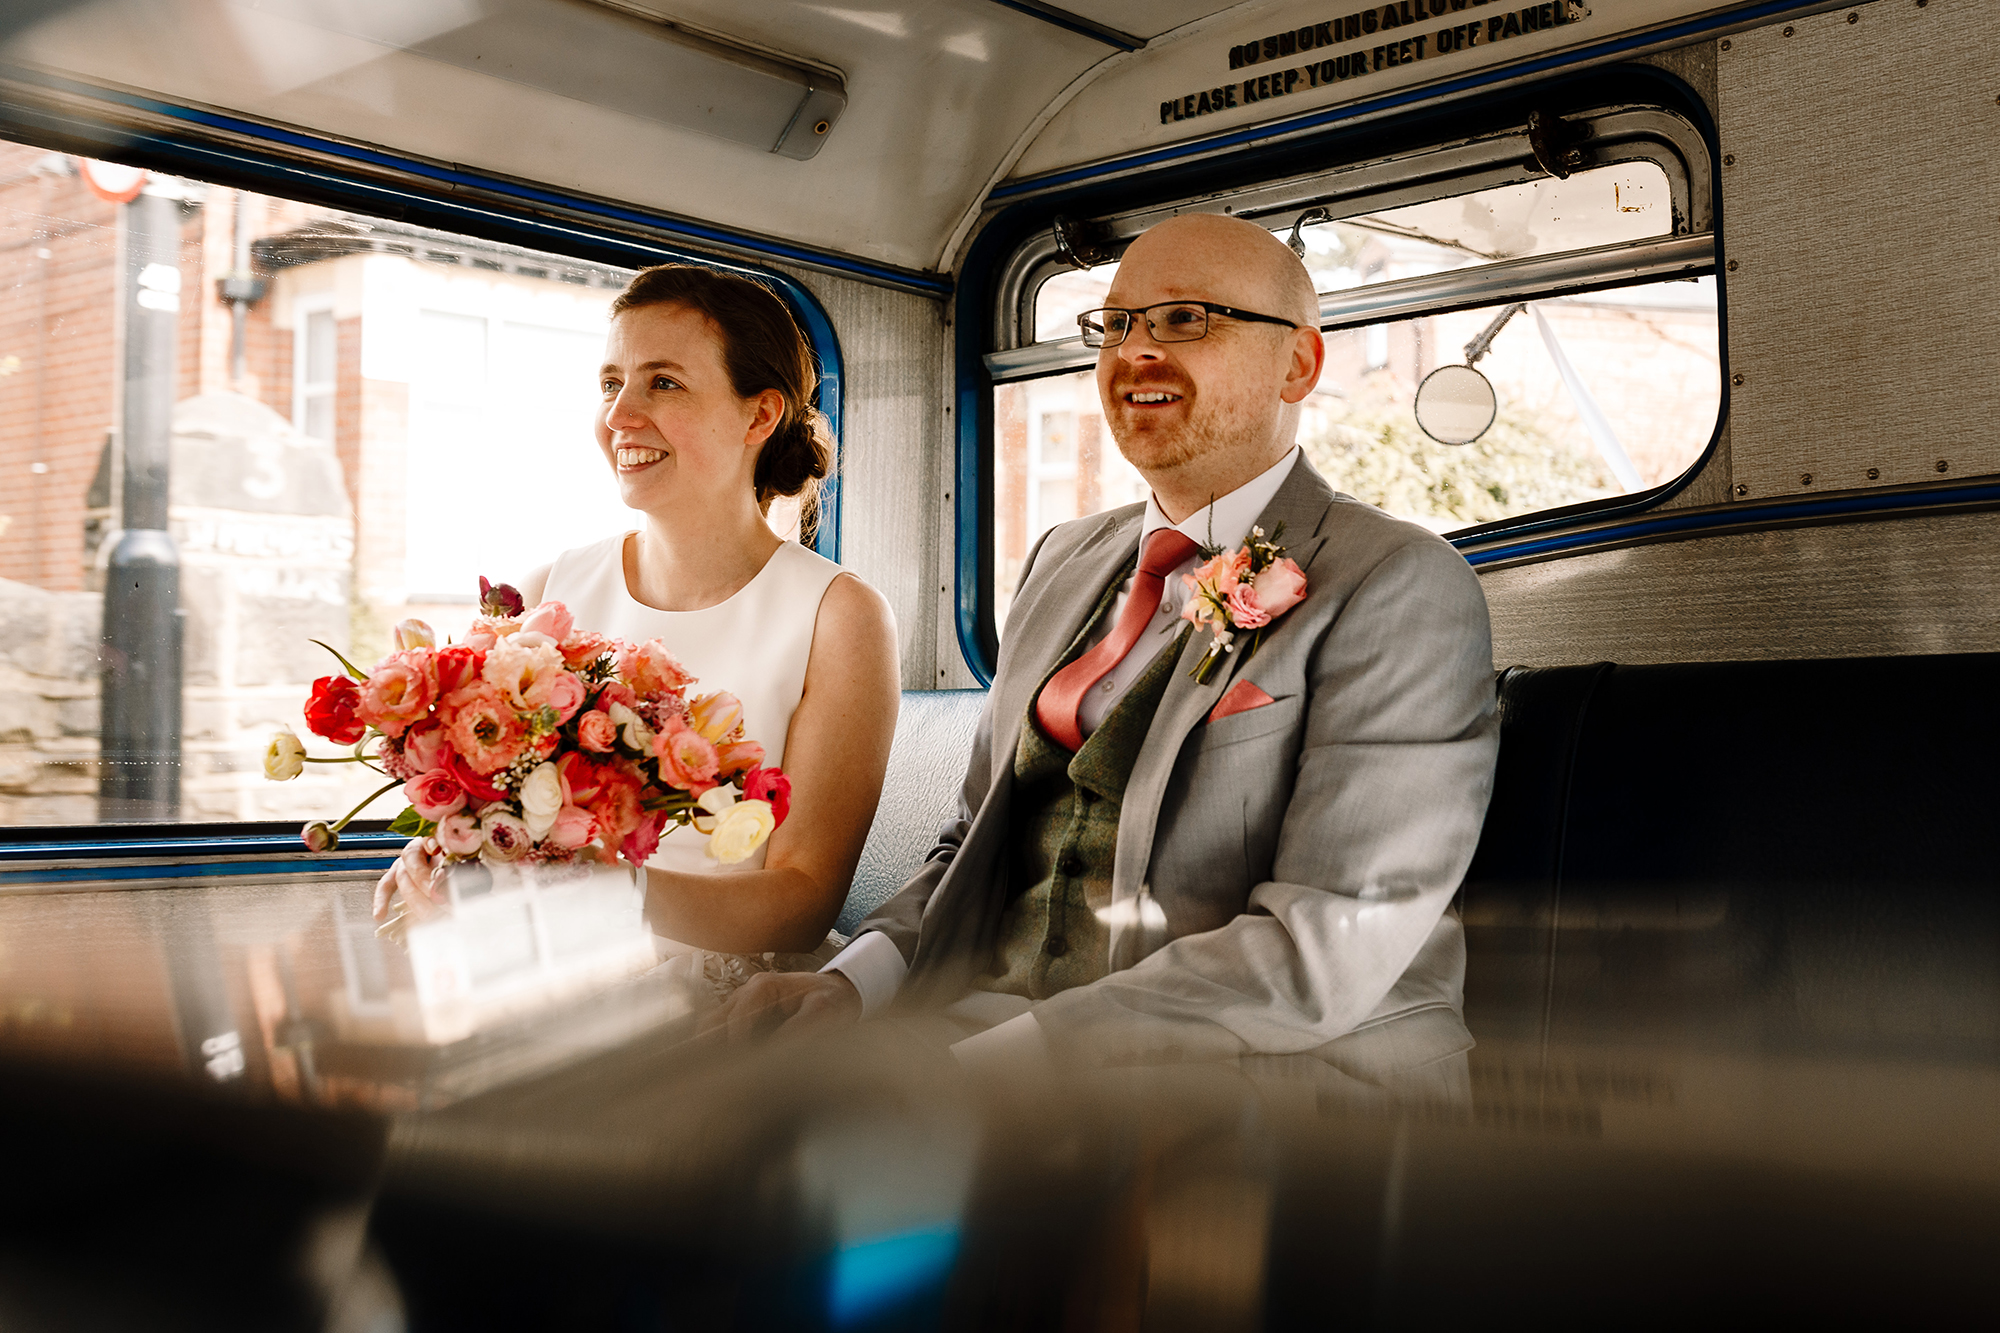 A bride and groom sat on a vintage bus